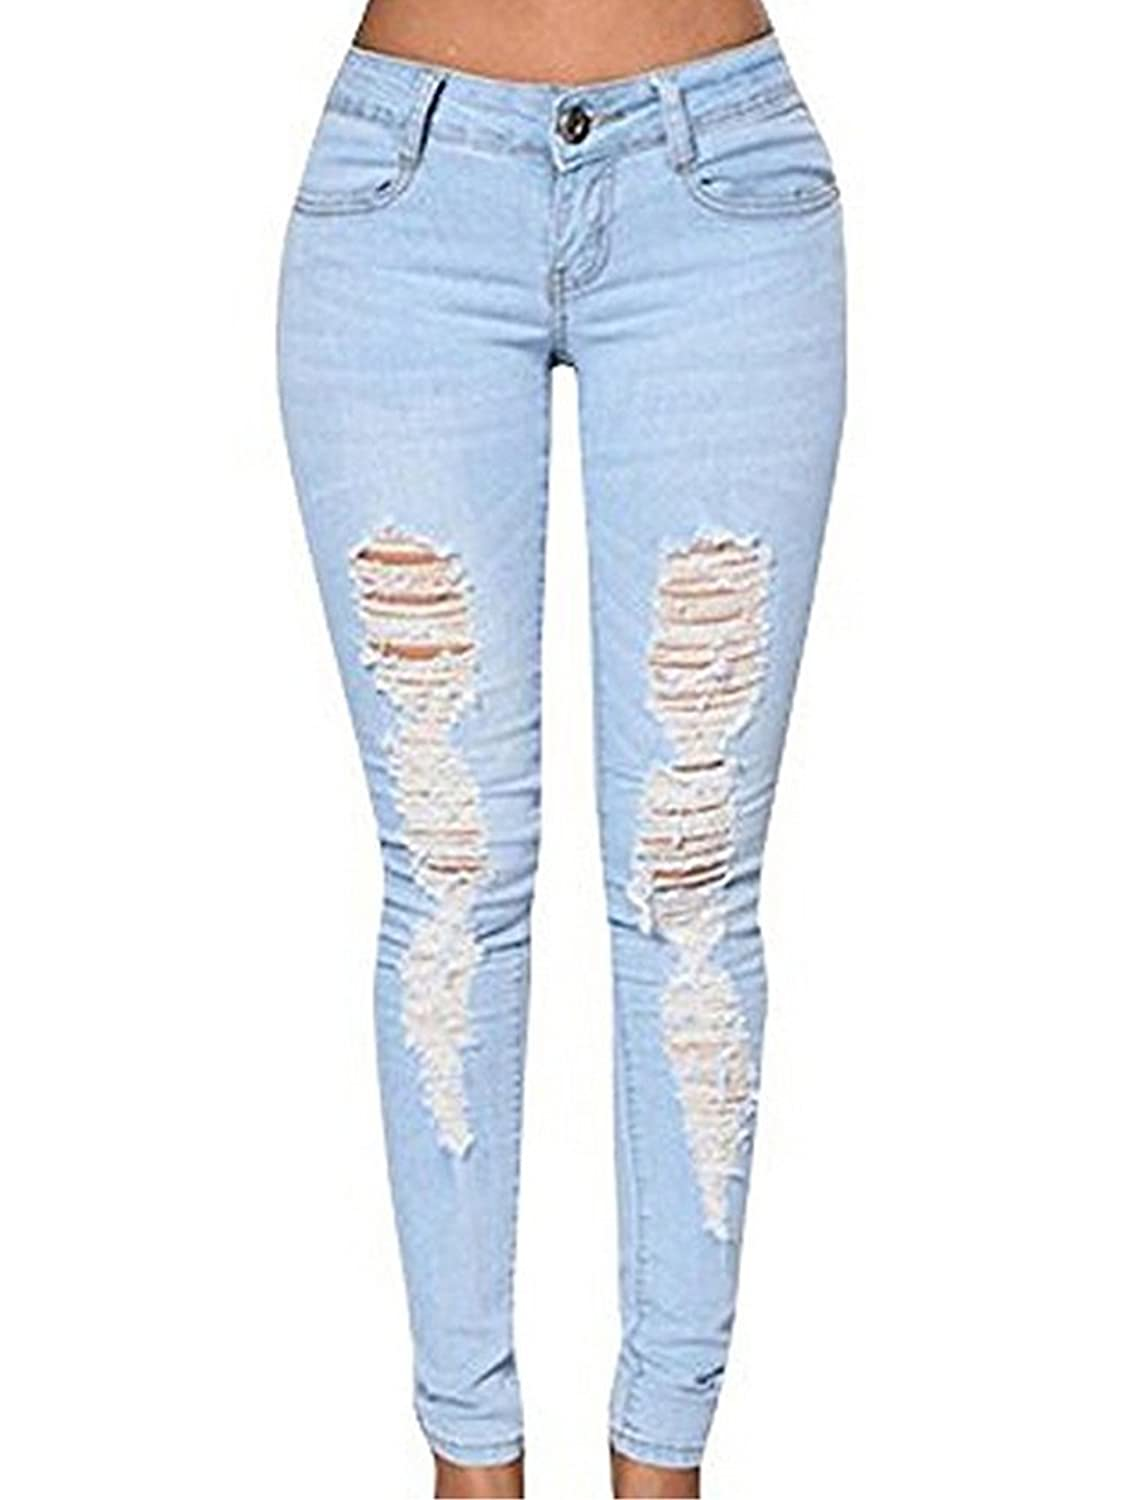 Gooket Women's Stretch Jeans Destroy Skinny Ripped Distressed Long Pants Blue Denim